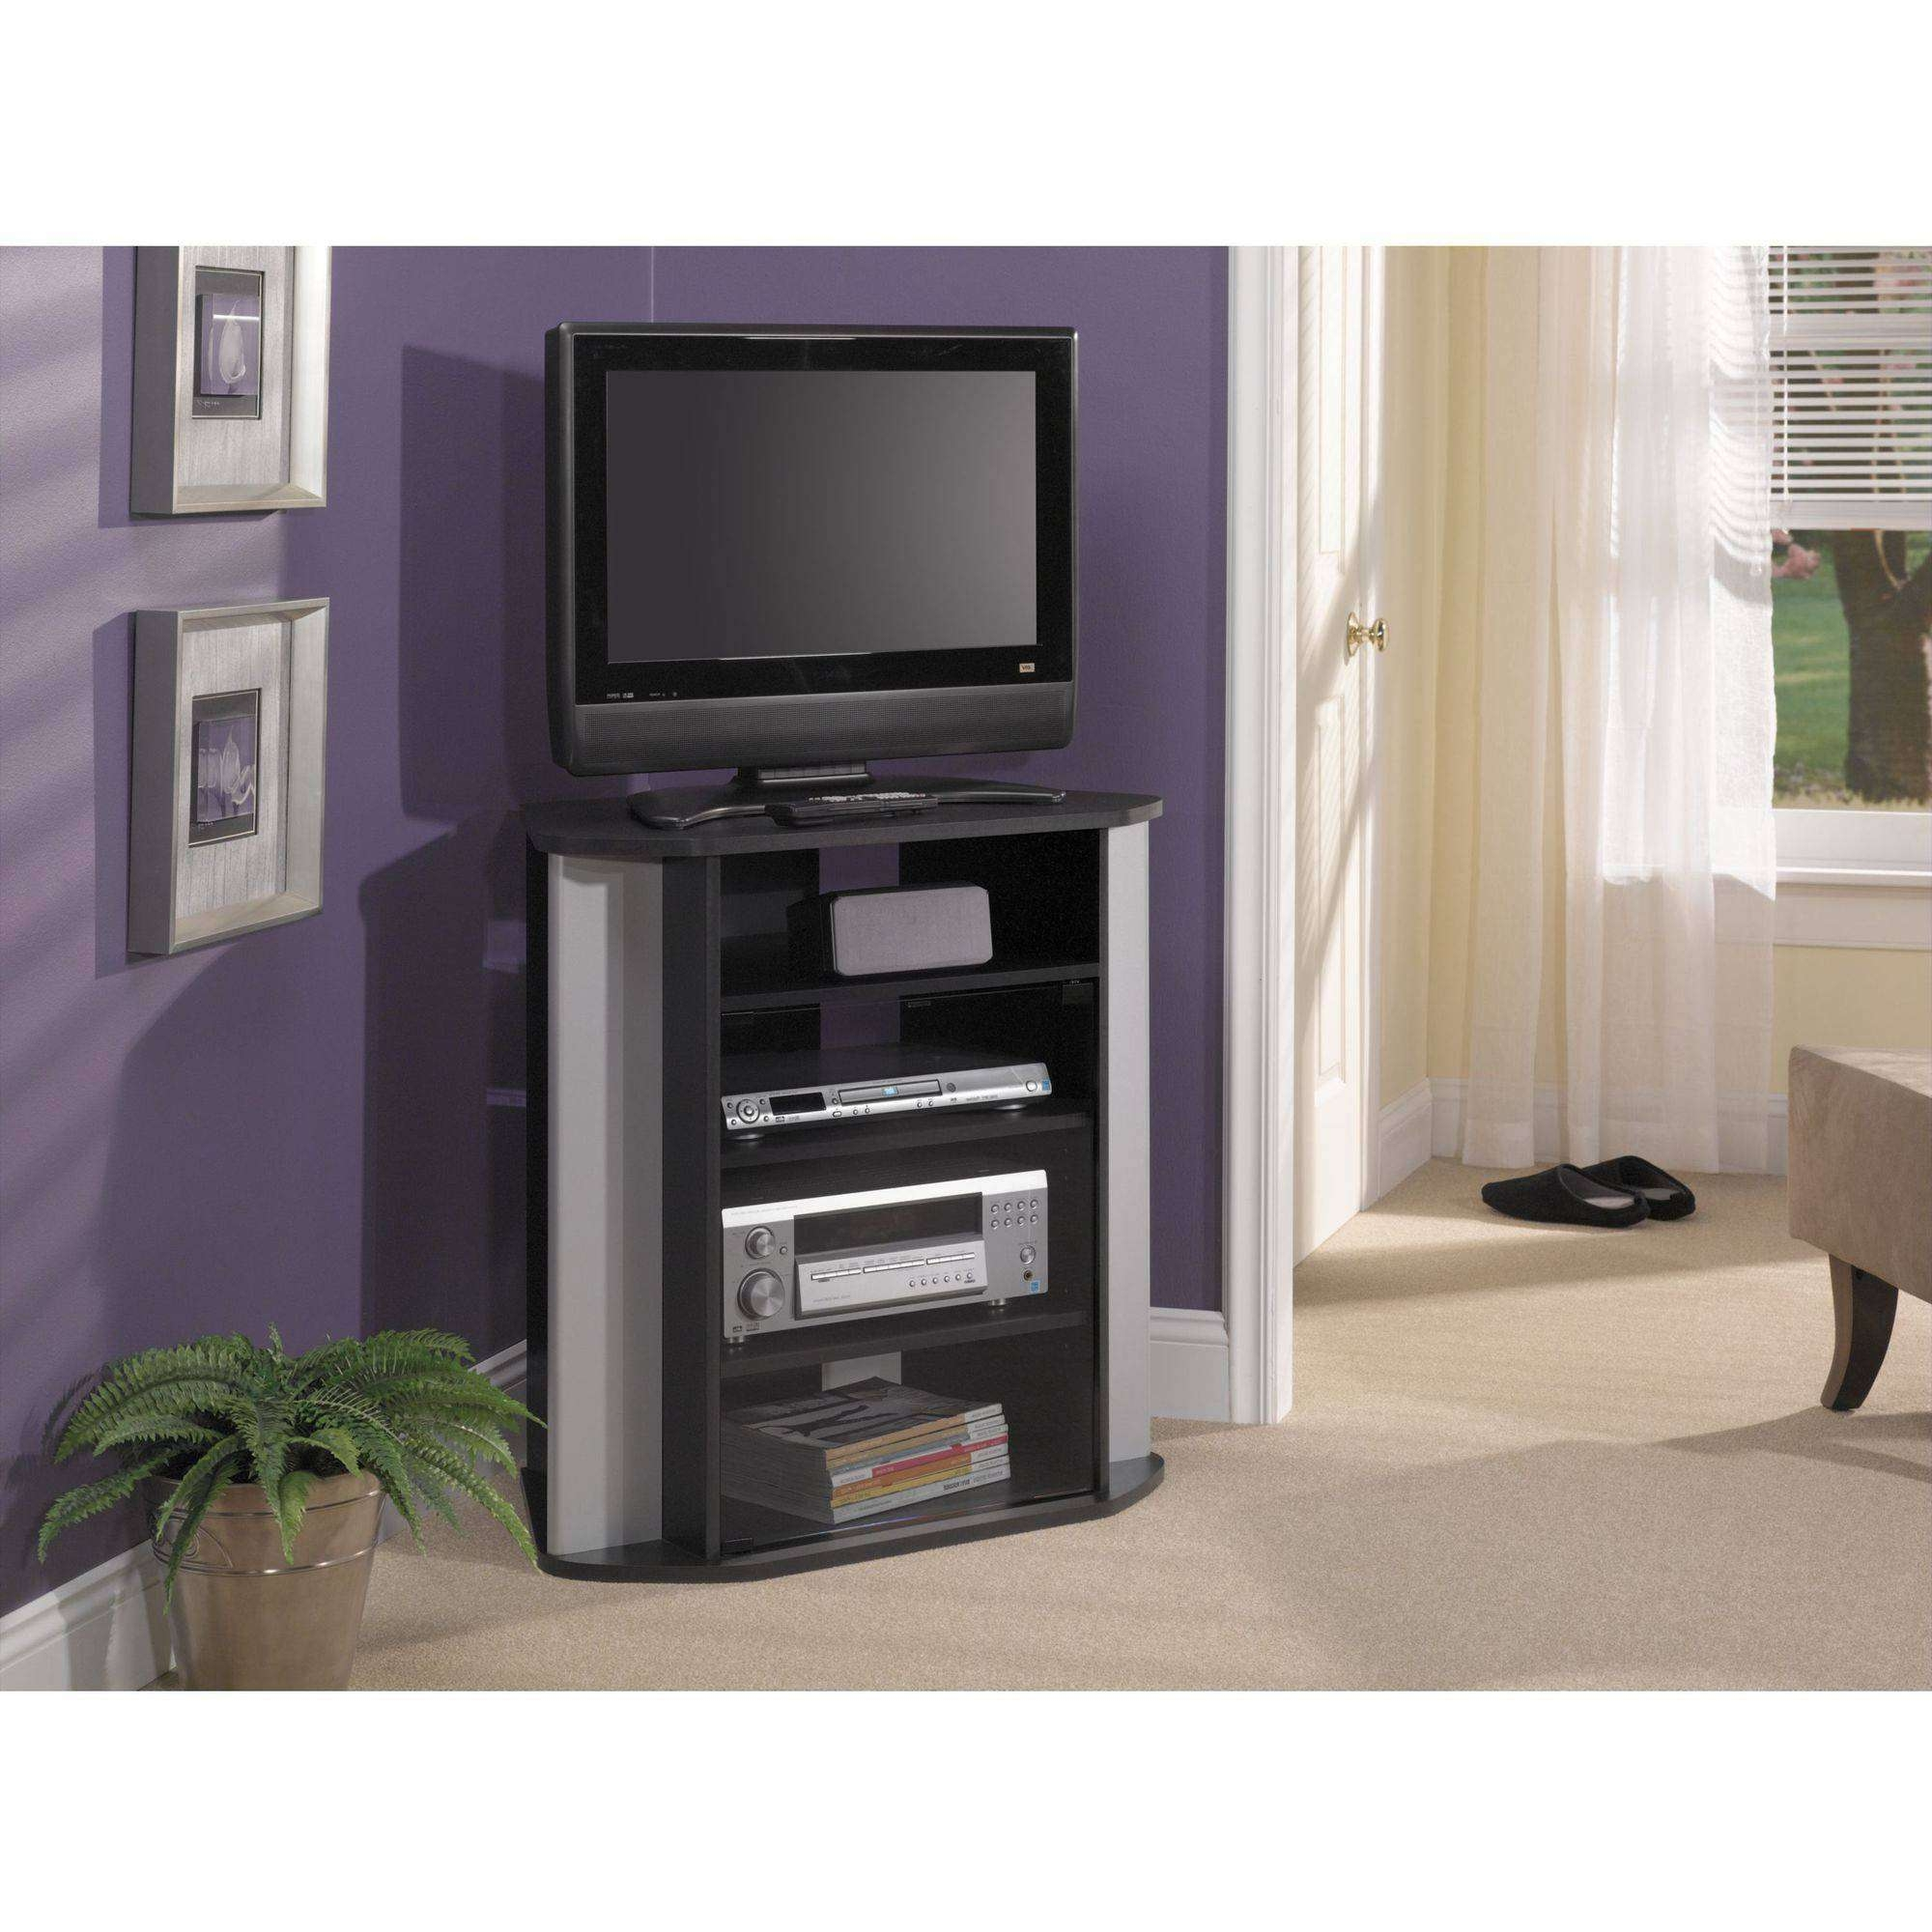 Tv Stand : Black Corner Tv Stands For Small Spaces With Glass In Black Corner Tv Cabinets With Glass Doors (View 18 of 20)